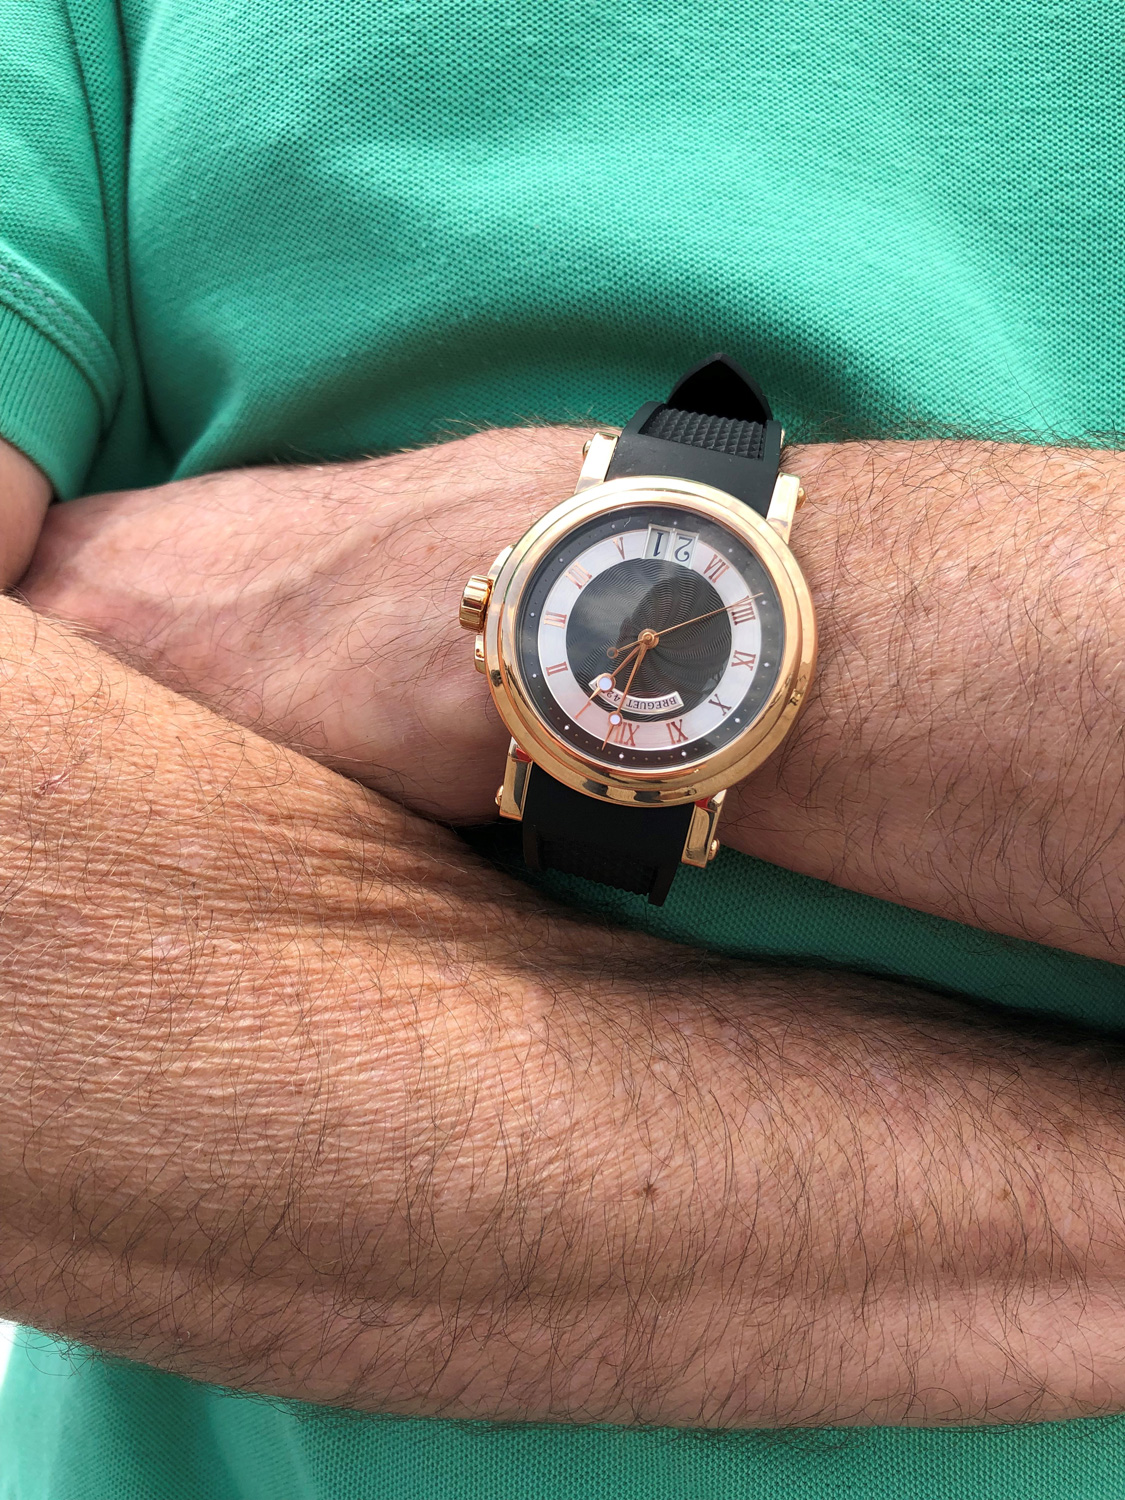 Jeff Bernard's watch